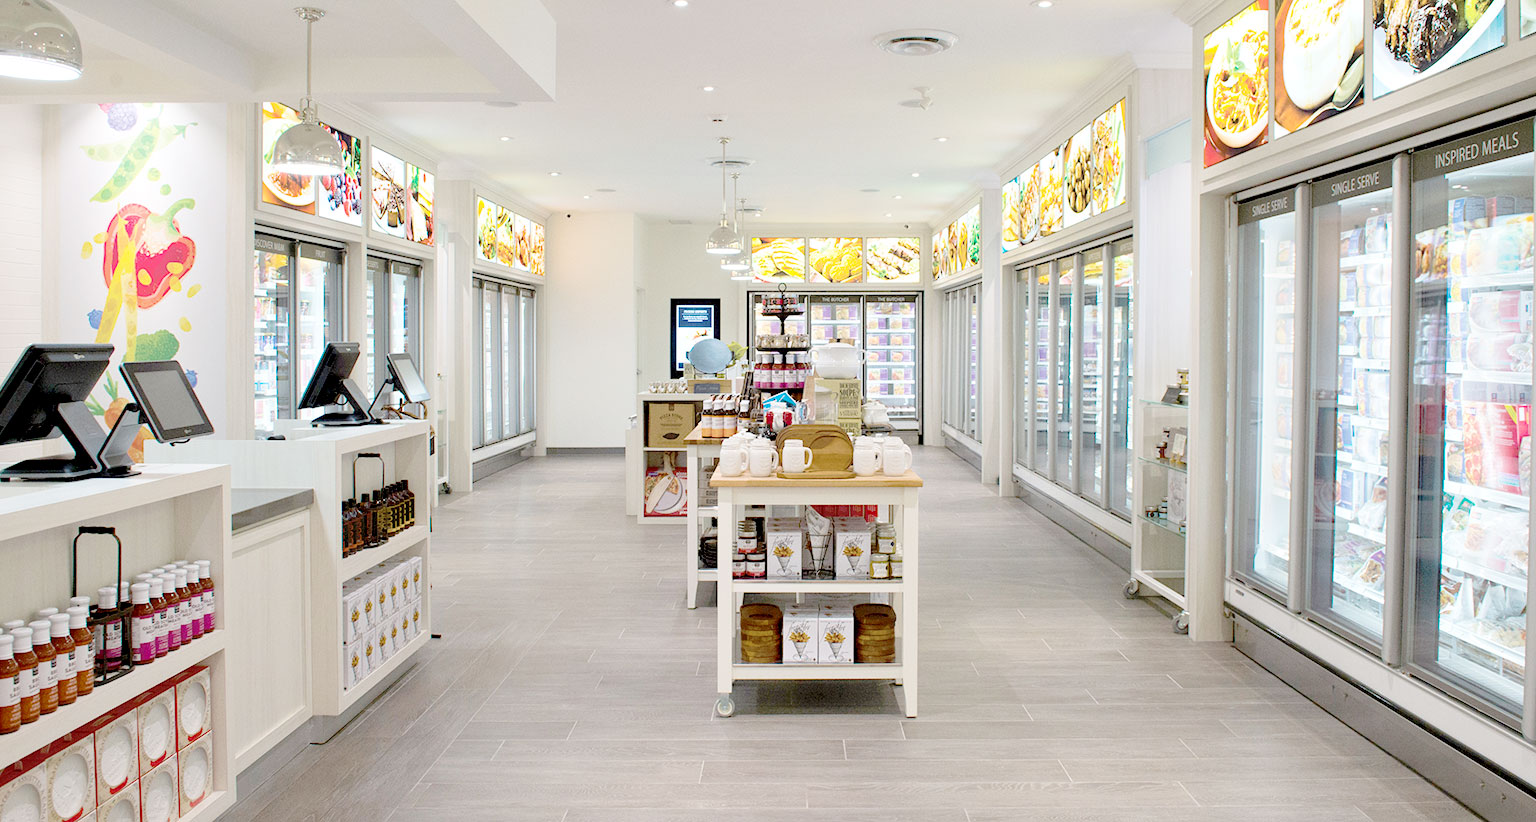 M&M Food Market - Shikatani Lacroix Design Inc.